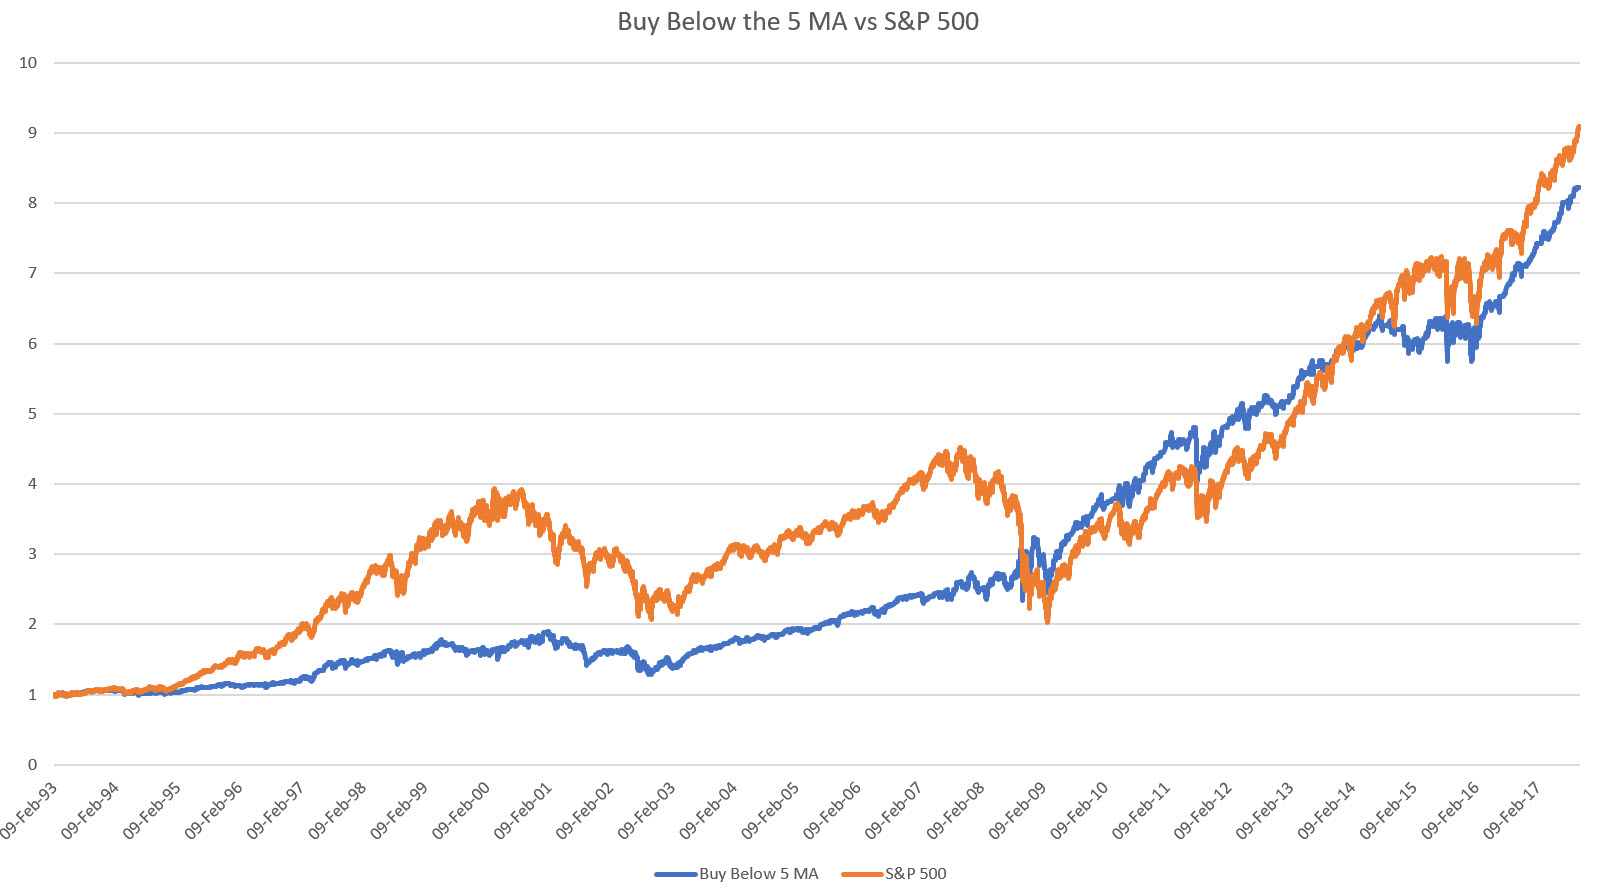 Buying Below MA vs SP 500